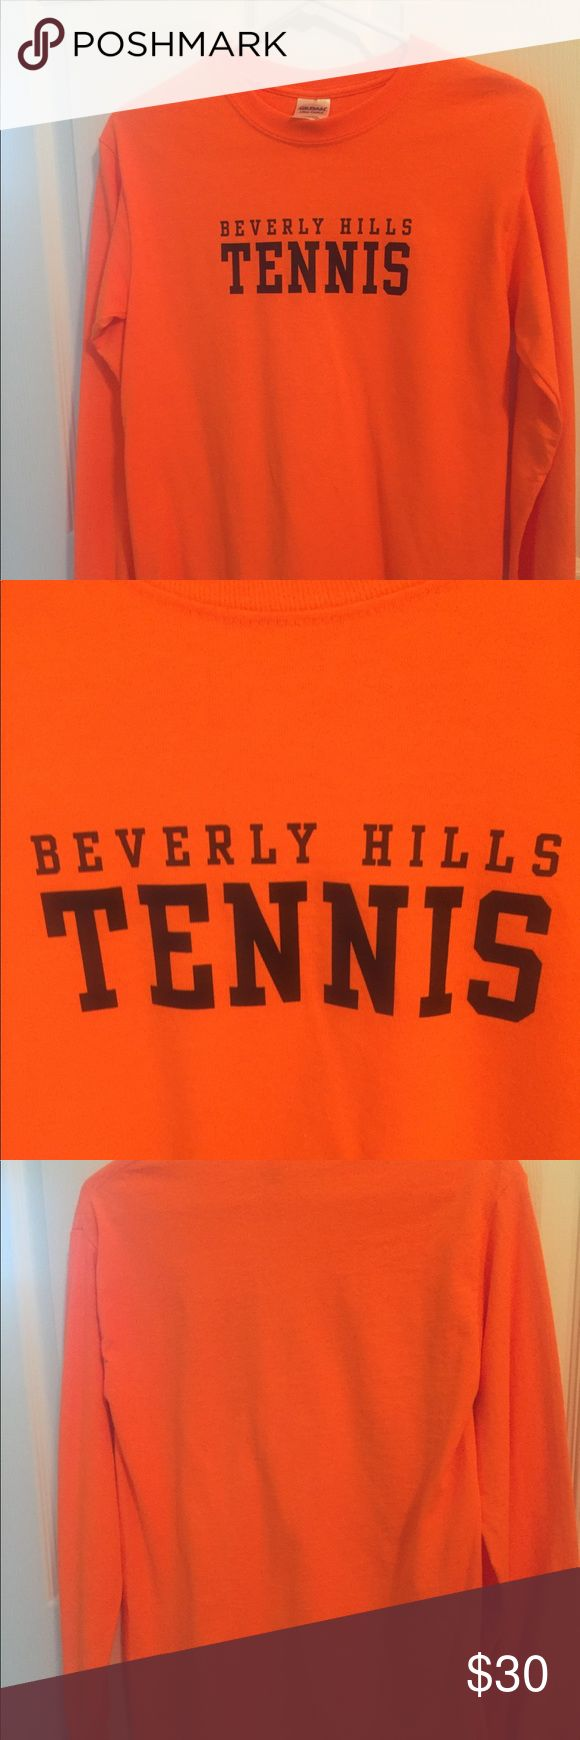 Beverly Hills Tennis T- Shirt This is a long sleeve orange Beverly Hills Tennis T-shirt written in black. It is a size small and only worn once it also has a circle neck line . Beverly Hills Tennis Skirts